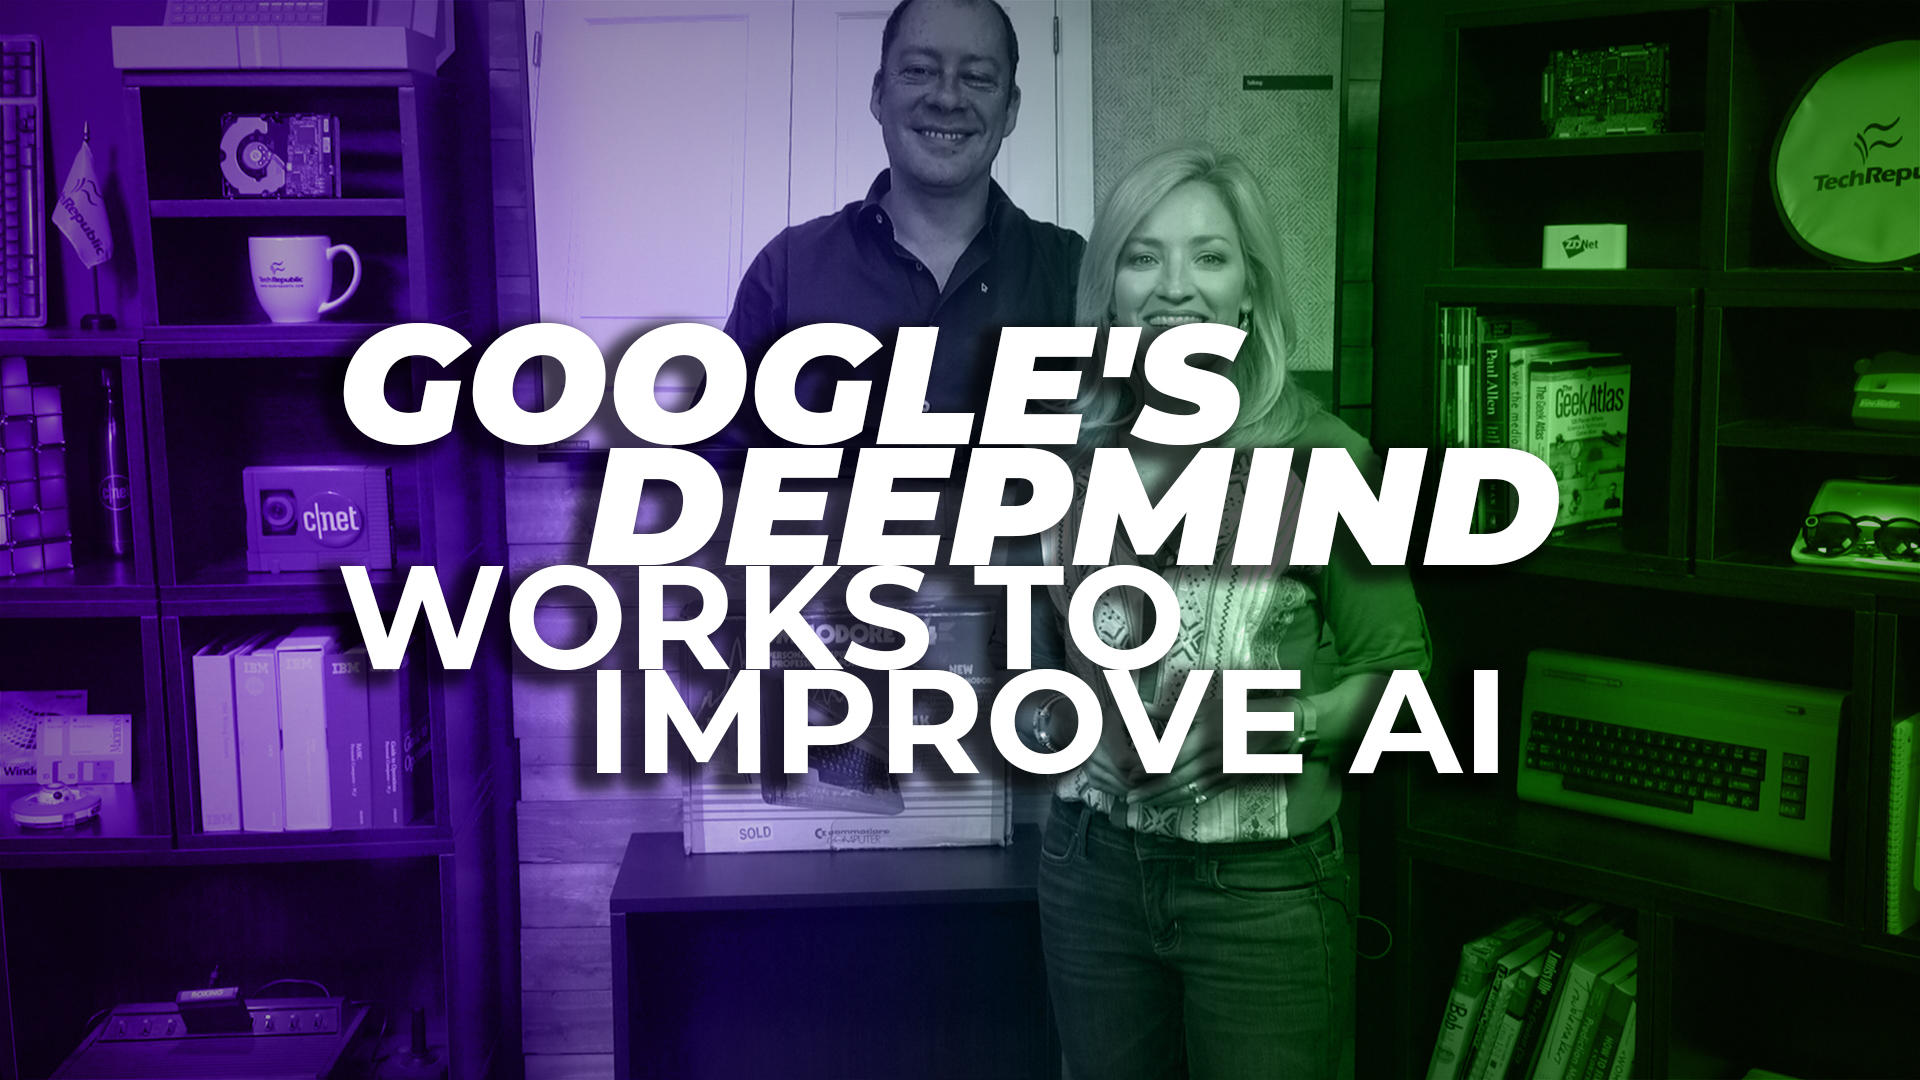 012 Thumb Google Deepmind Researchs Outstanding Research Papers Full